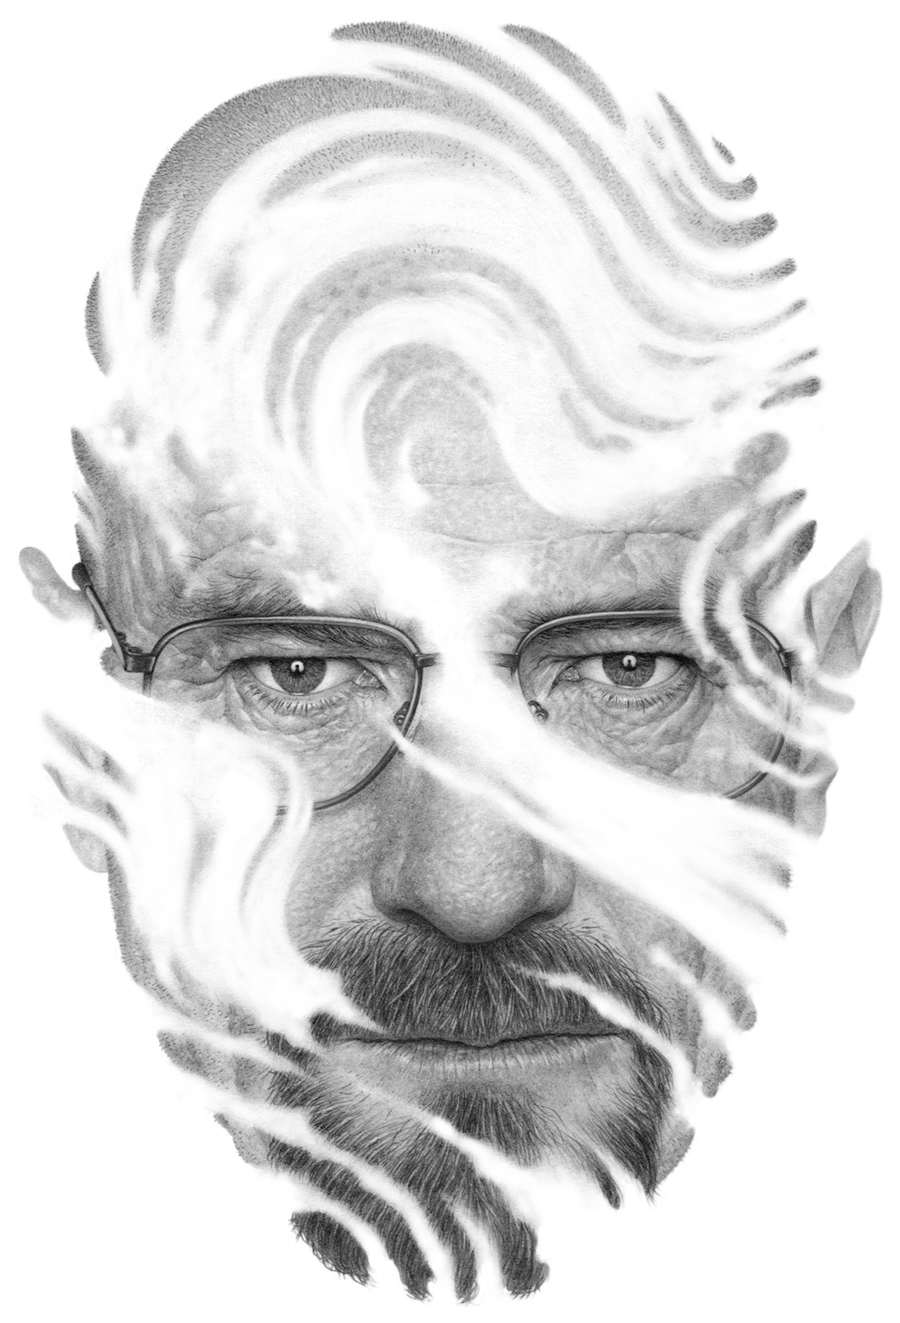 12-Walter-White- Breaking-Bad-TNR-Boris-Pelcer-Marriage-of-Traditional-and-Digital-Art-www-designstack-co